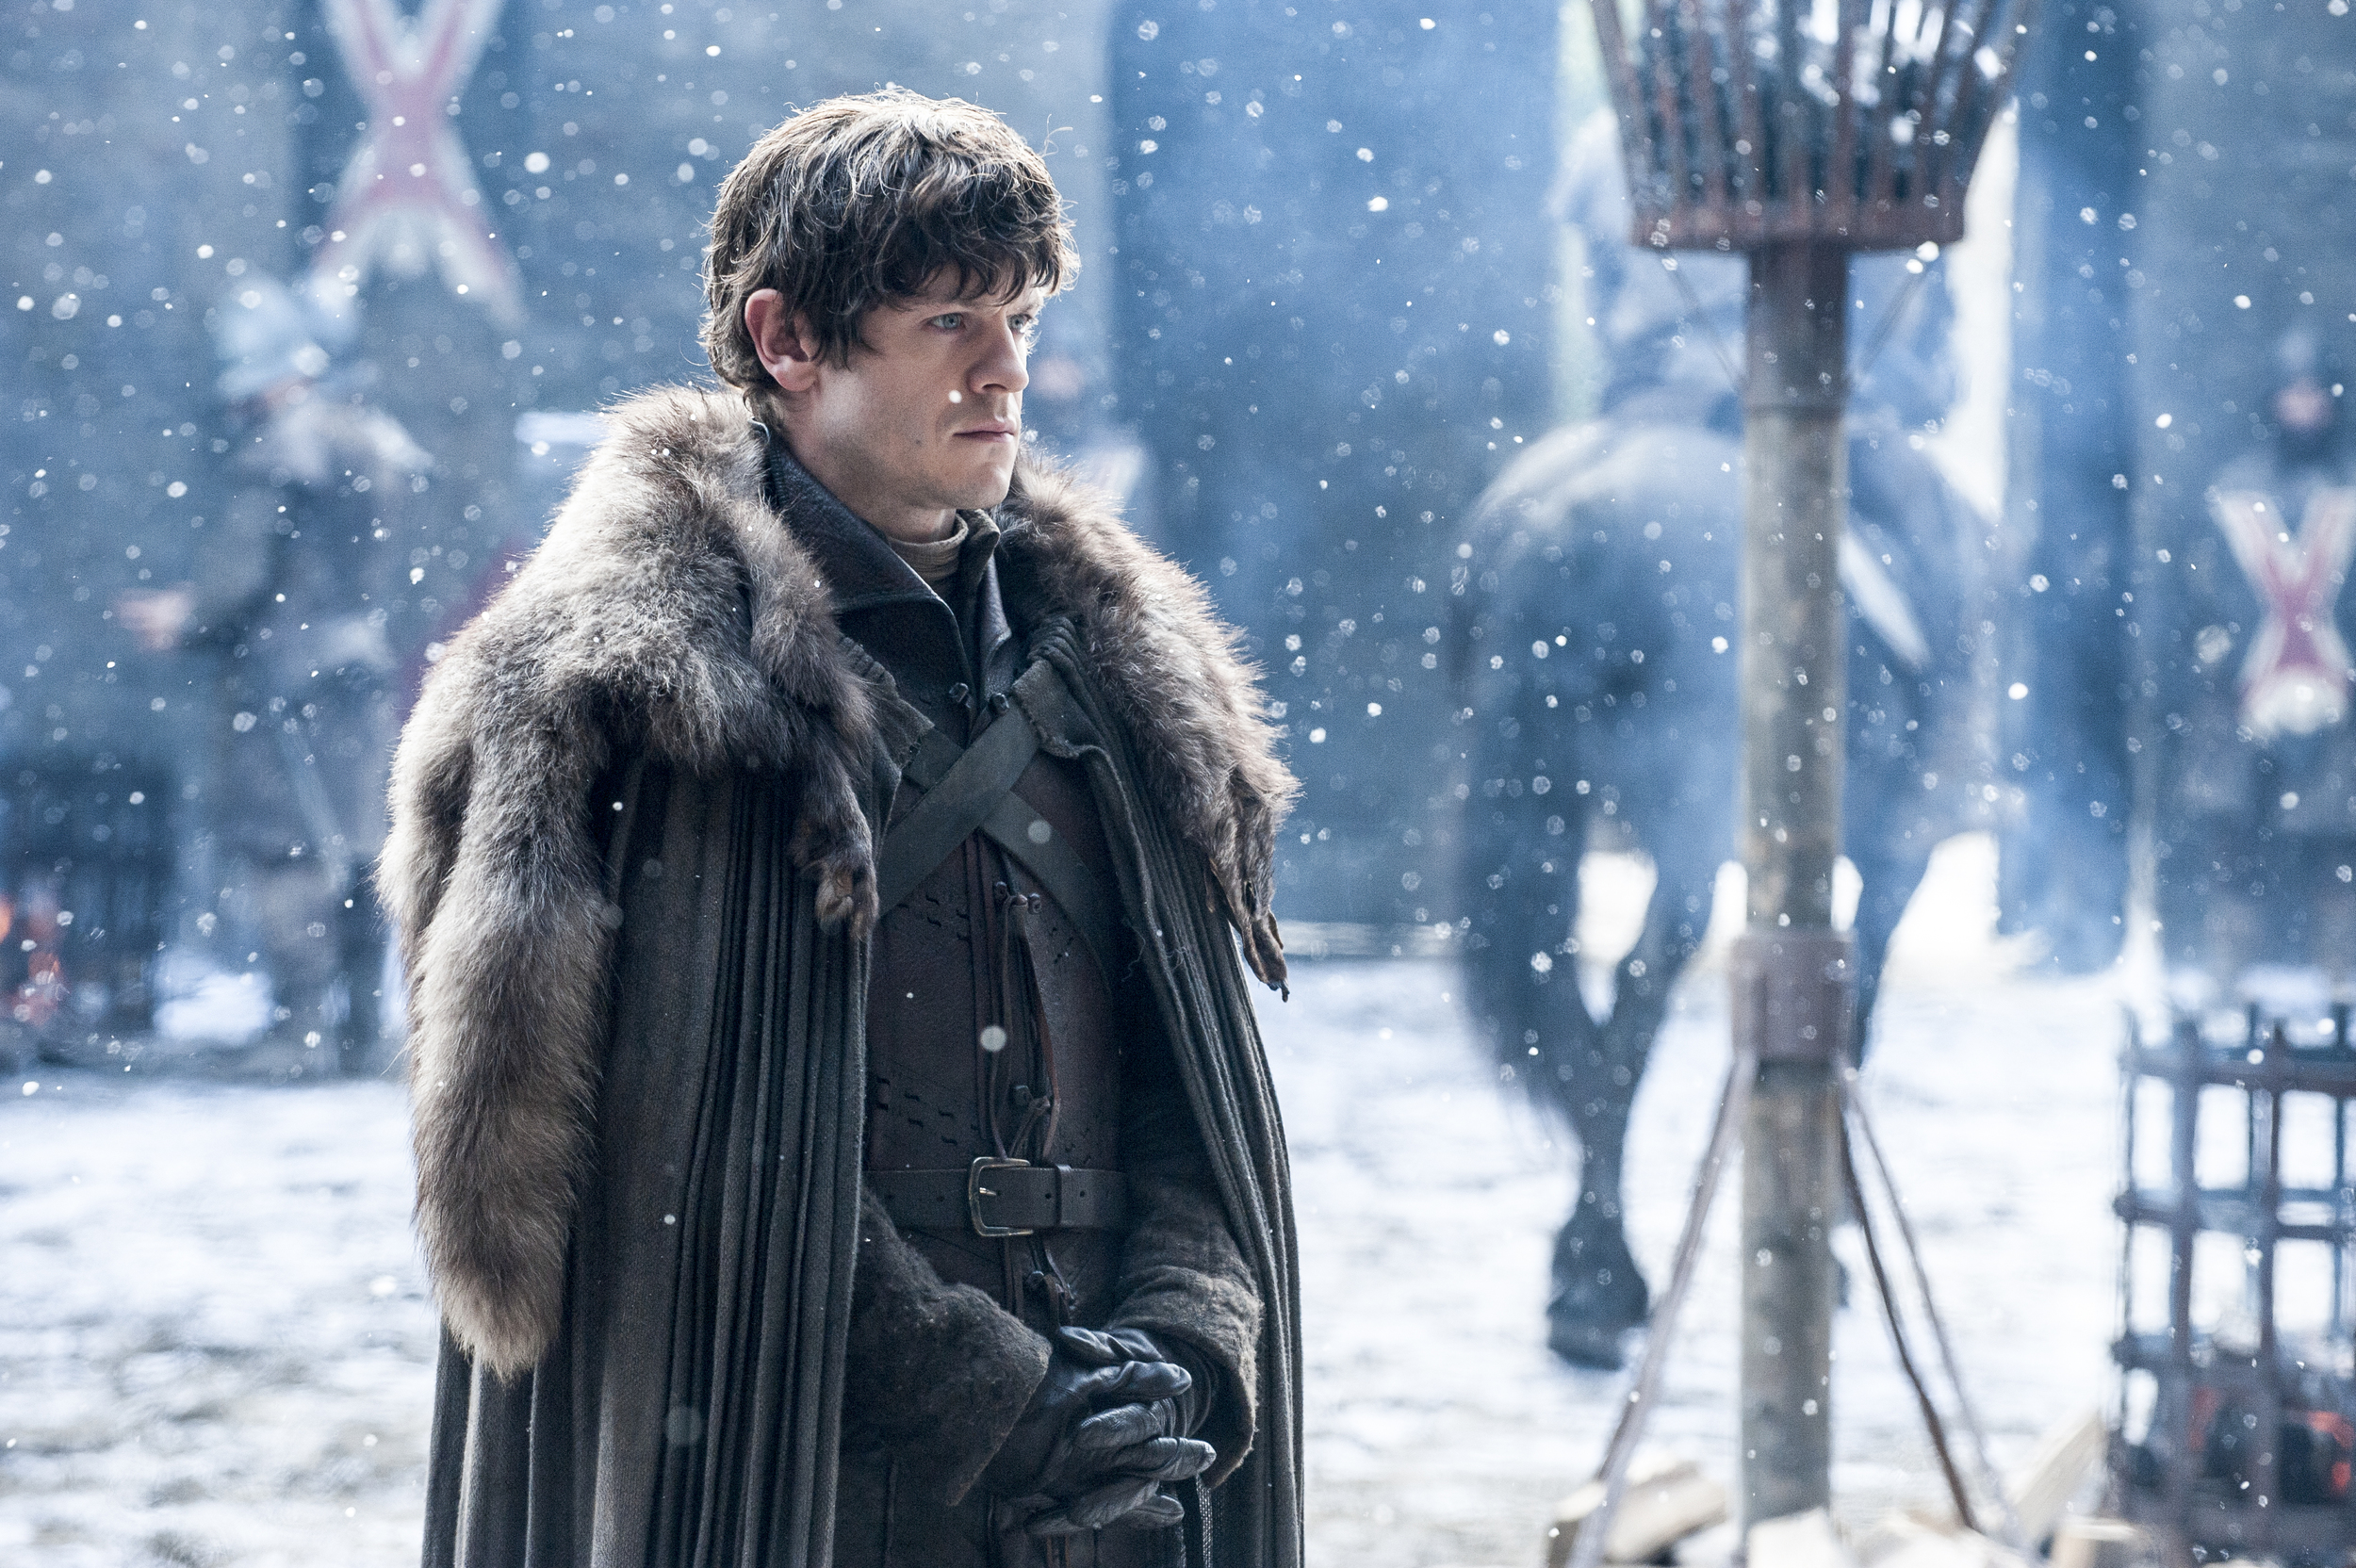 game of thrones season 6 photos, ramsay bolton, iwan rheon